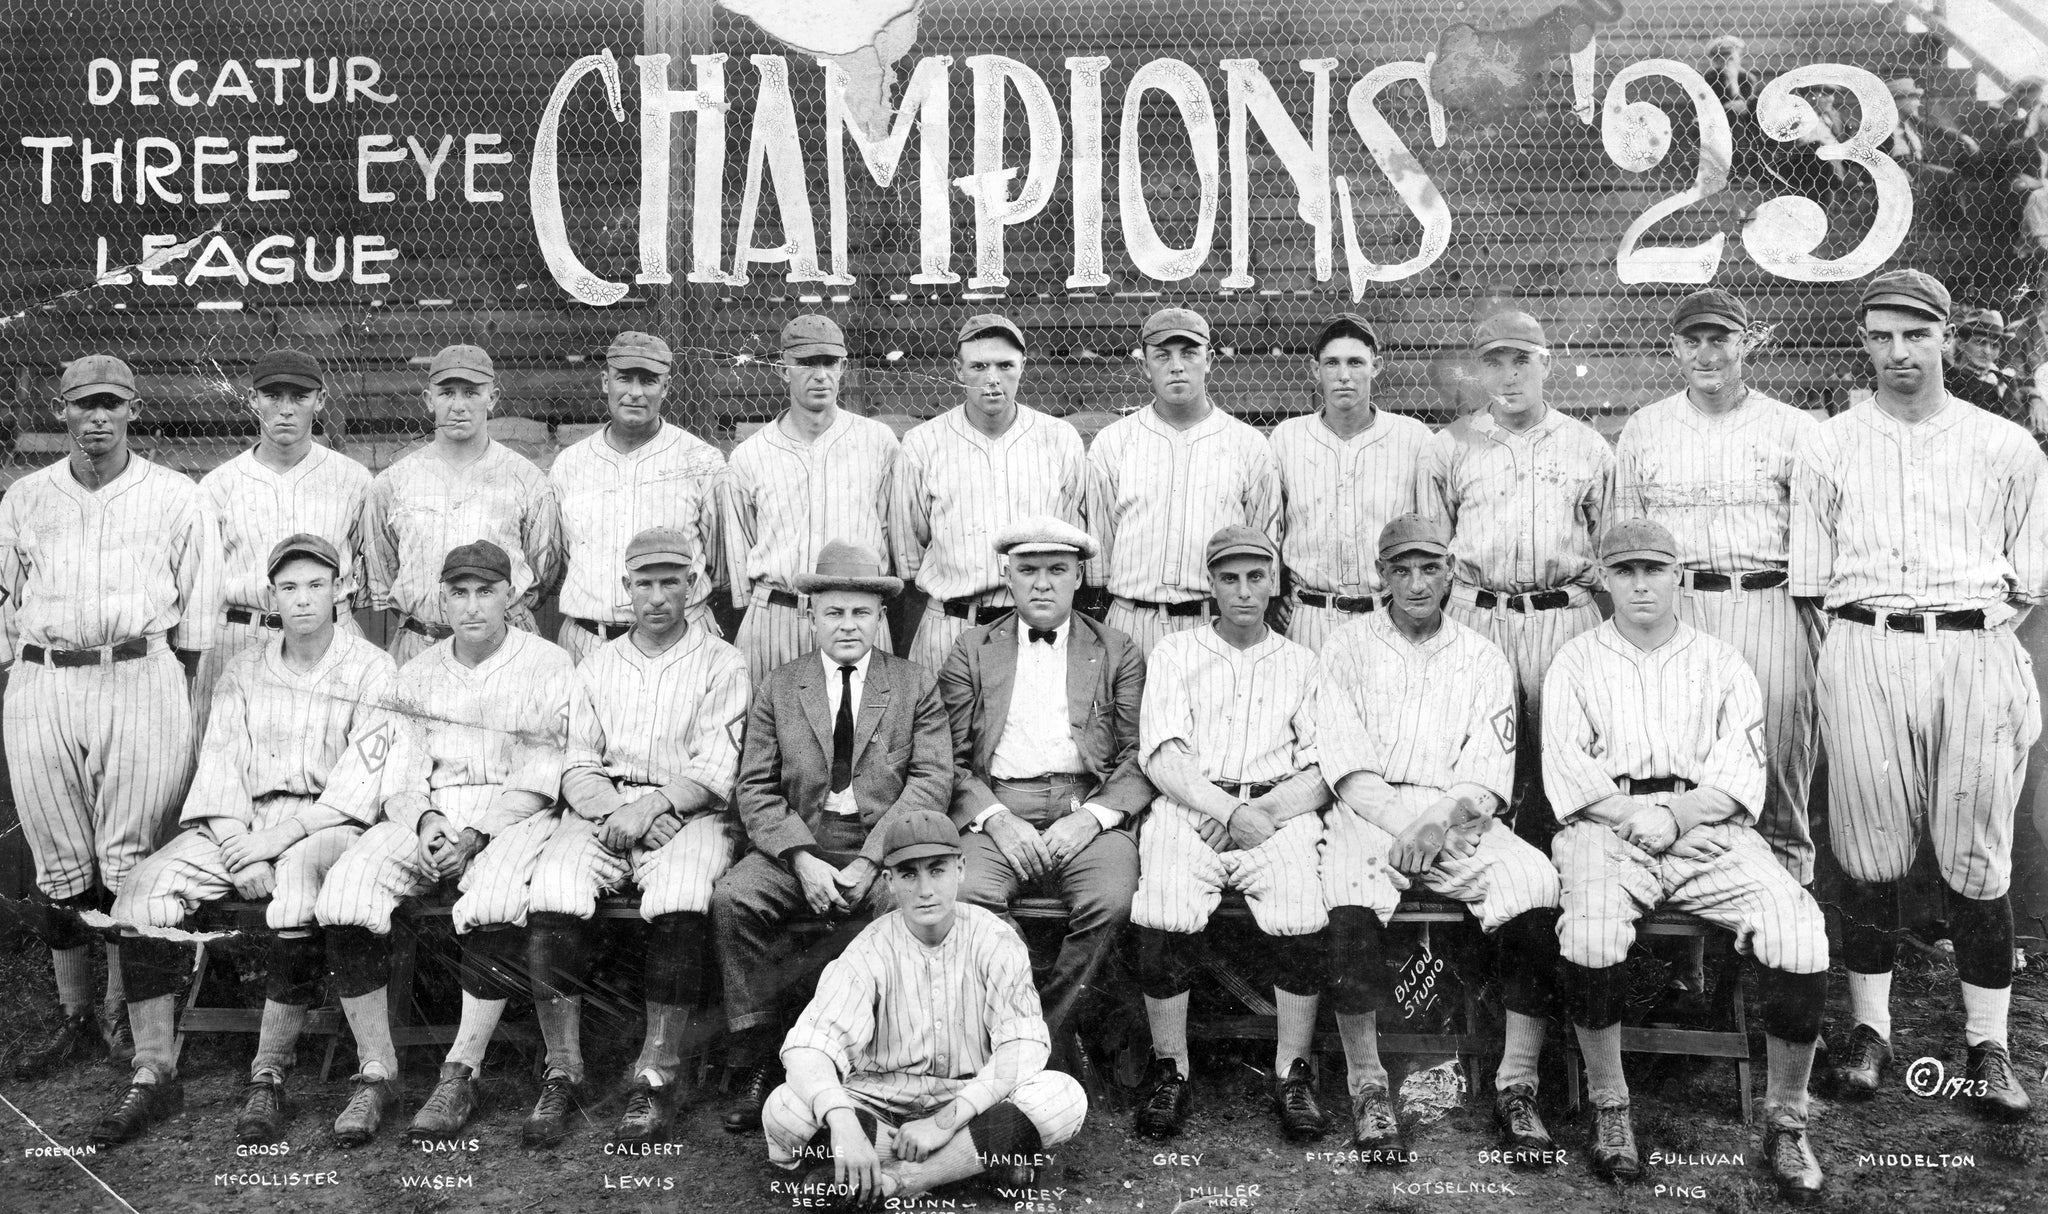 Decatur Commodores, Three-I League Champions of 1923. Front row, from left: Ralph McCollister, Fred Wasem, Lewis, R.W. Heady, Quinn (on ground), Wiley, Chuck Miller, Jack Kotselnick, Don Ping. Back row: Happy Foreman, Dan Gross, Glenn Davis, Ernest Calbert, Glen Harle, Handley, Gray, Fitzgerald, Brenner, Sullivan, John Middleton. -- Decatur Genealogical Society